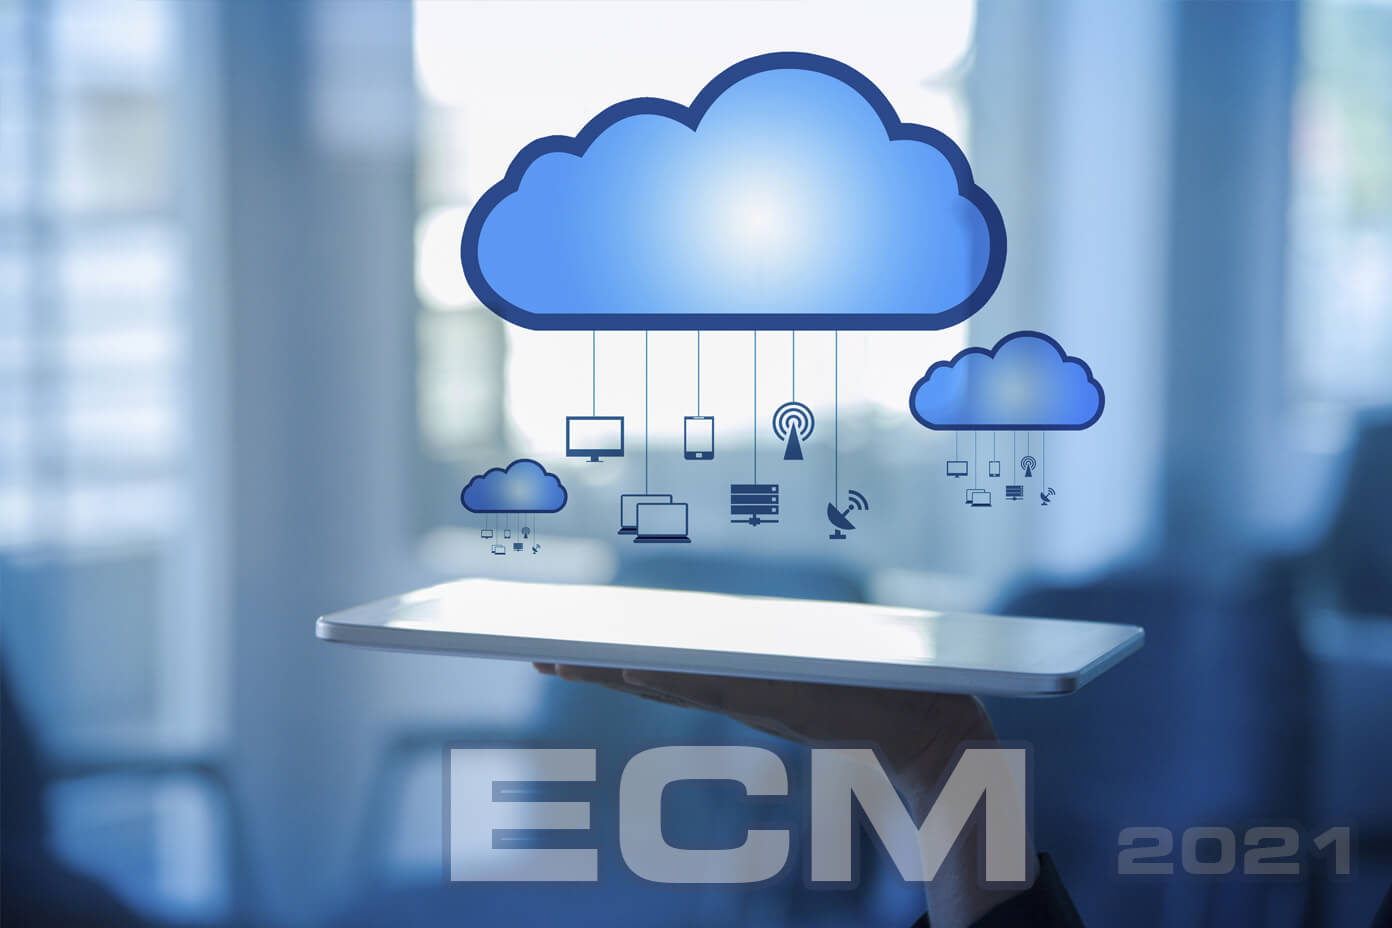 Why should organizations consider switching to cloud-based ECM?